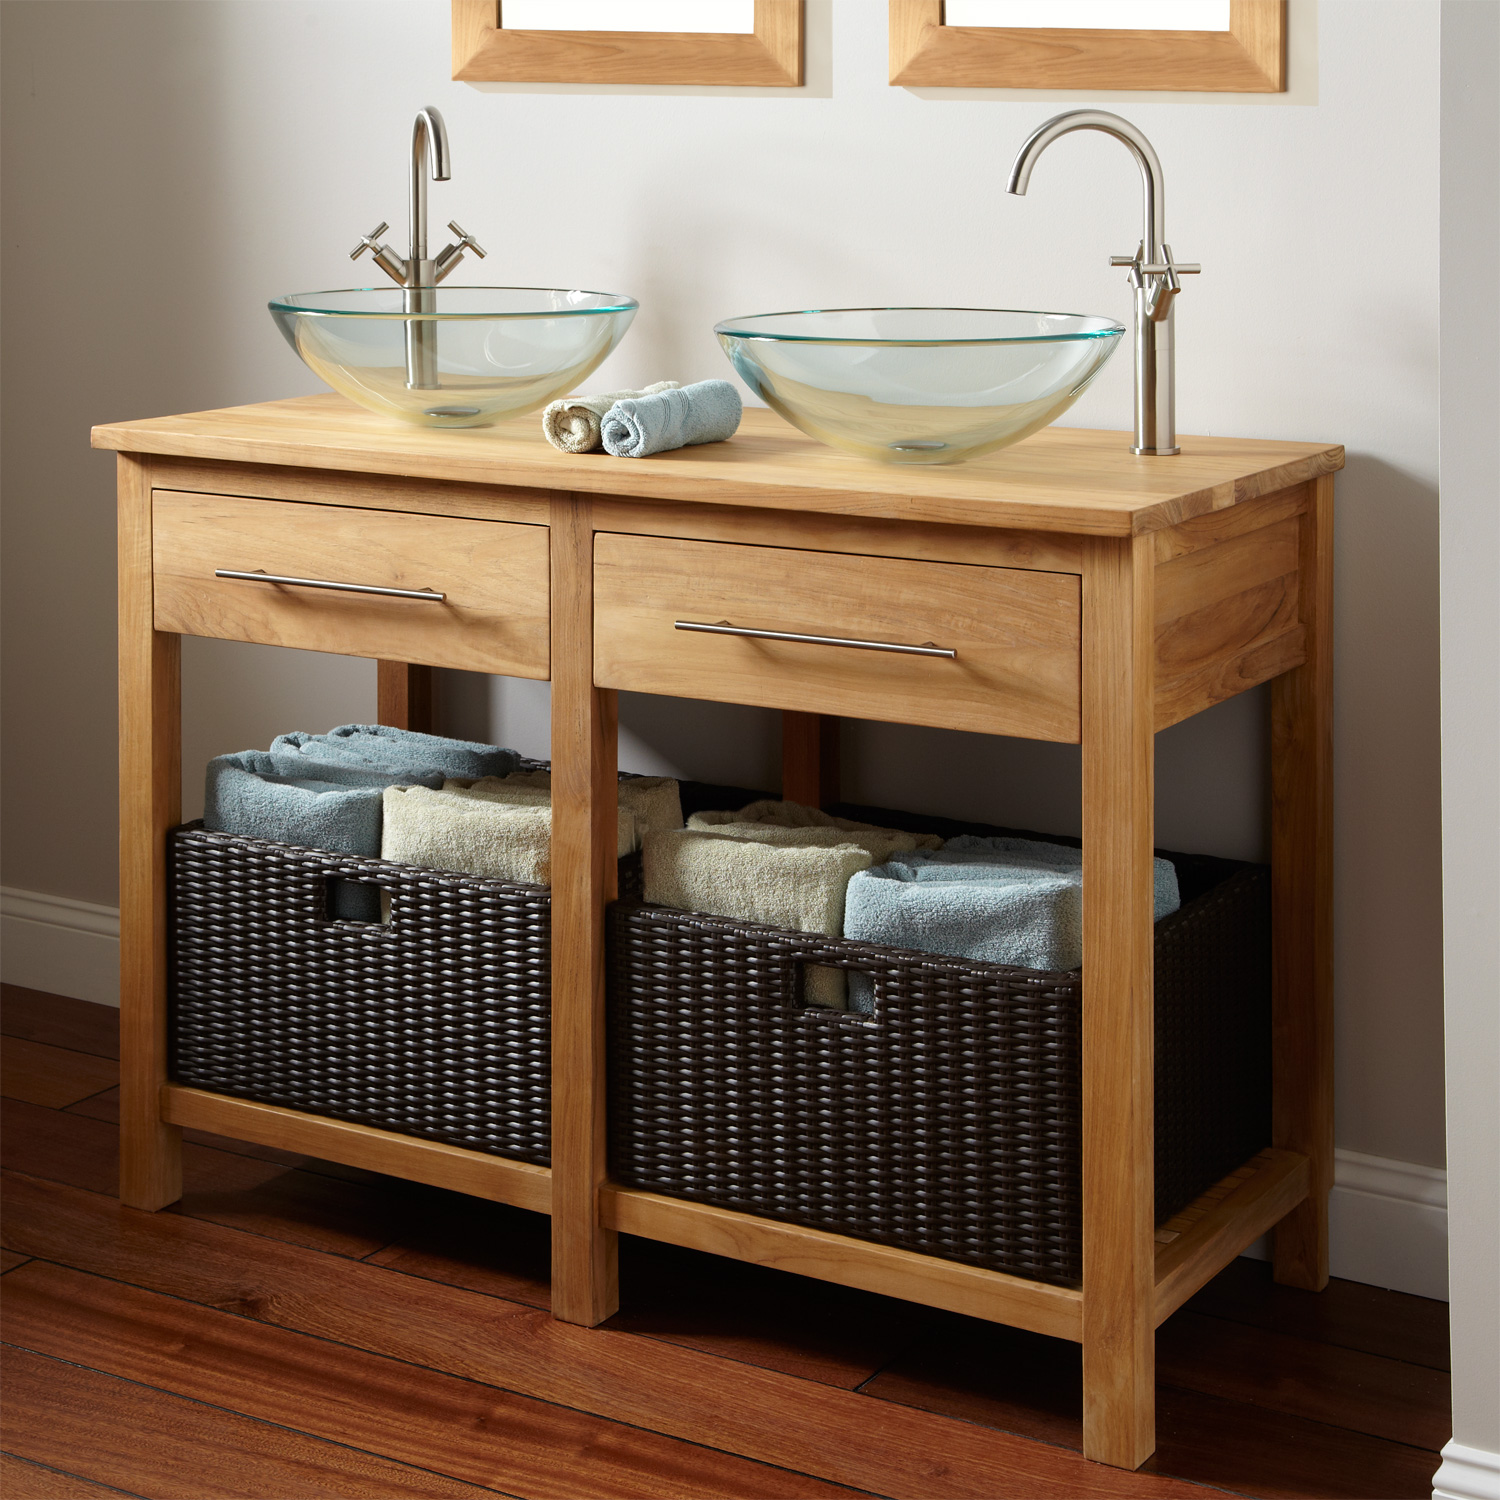 Diy Bathroom Vanity Save Money By Making Your Own Seek